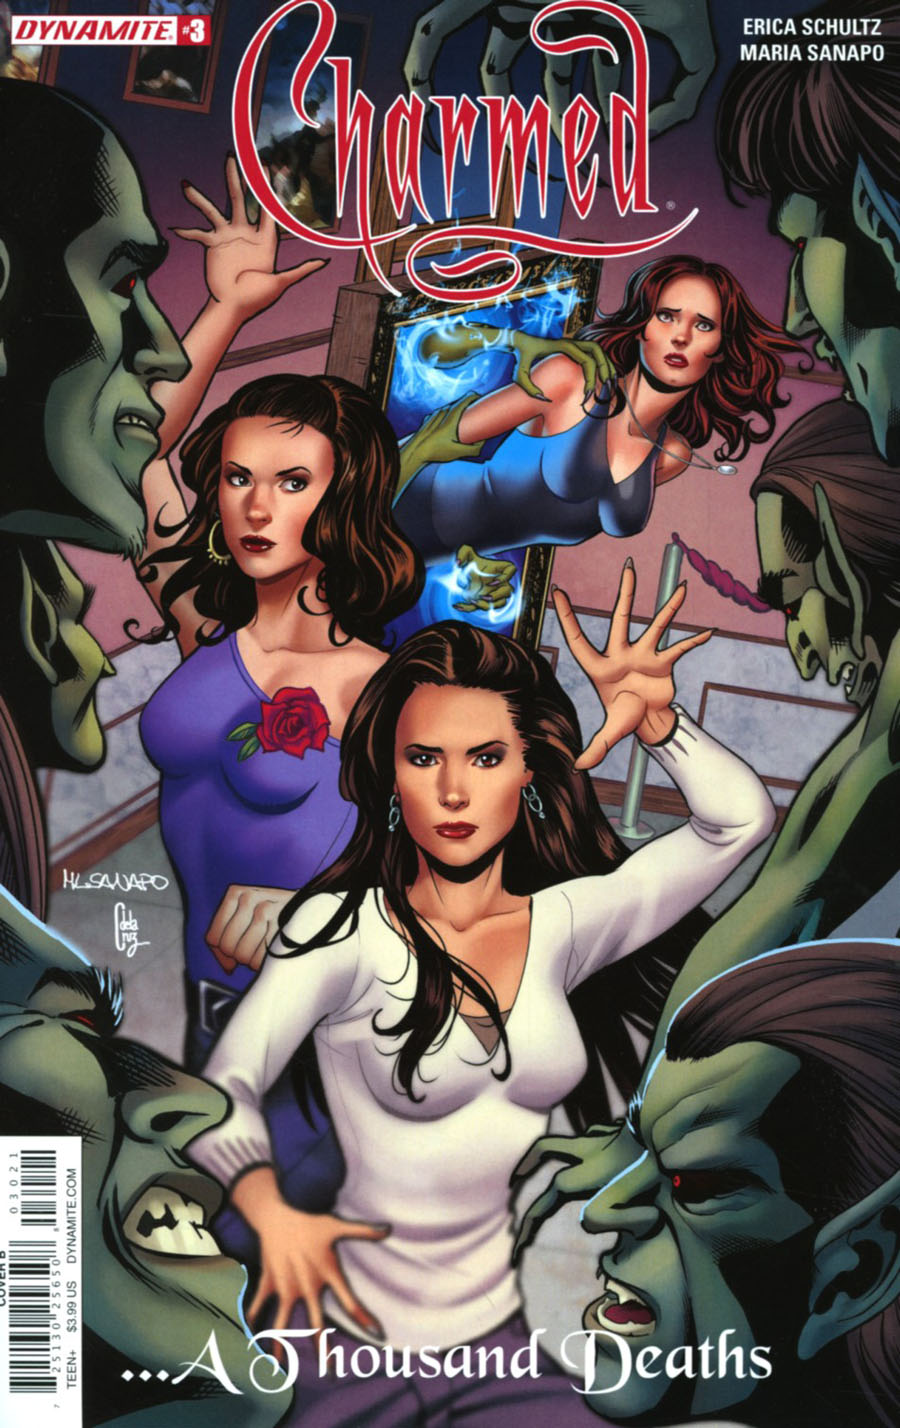 Charmed Vol 2 #3 Cover B Variant Maria Sanapo Cover